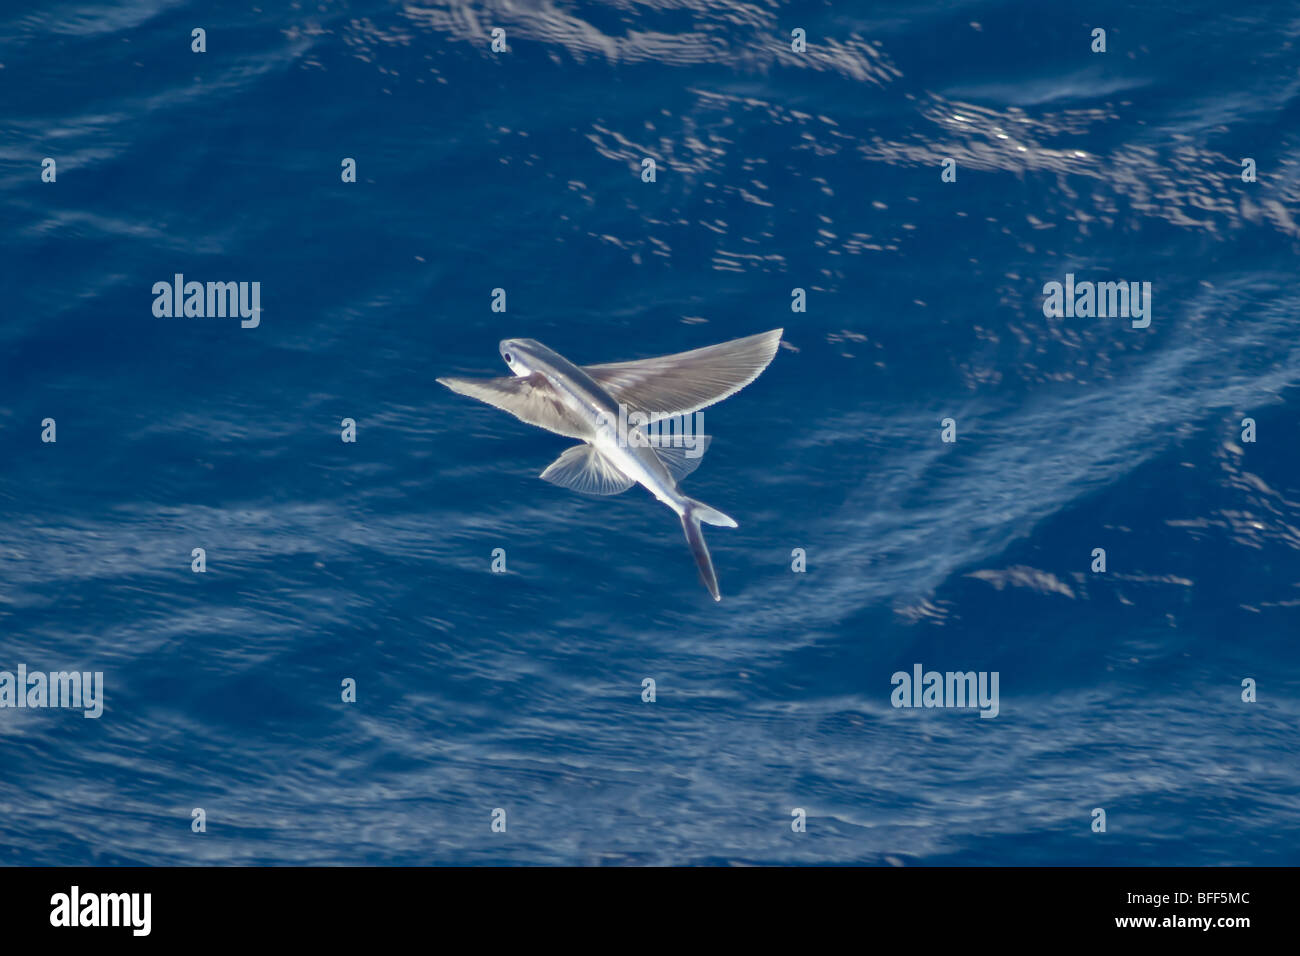 Flying Fish Species in mid air, scientific name unknown, South Atlantic Ocean. Stock Photo